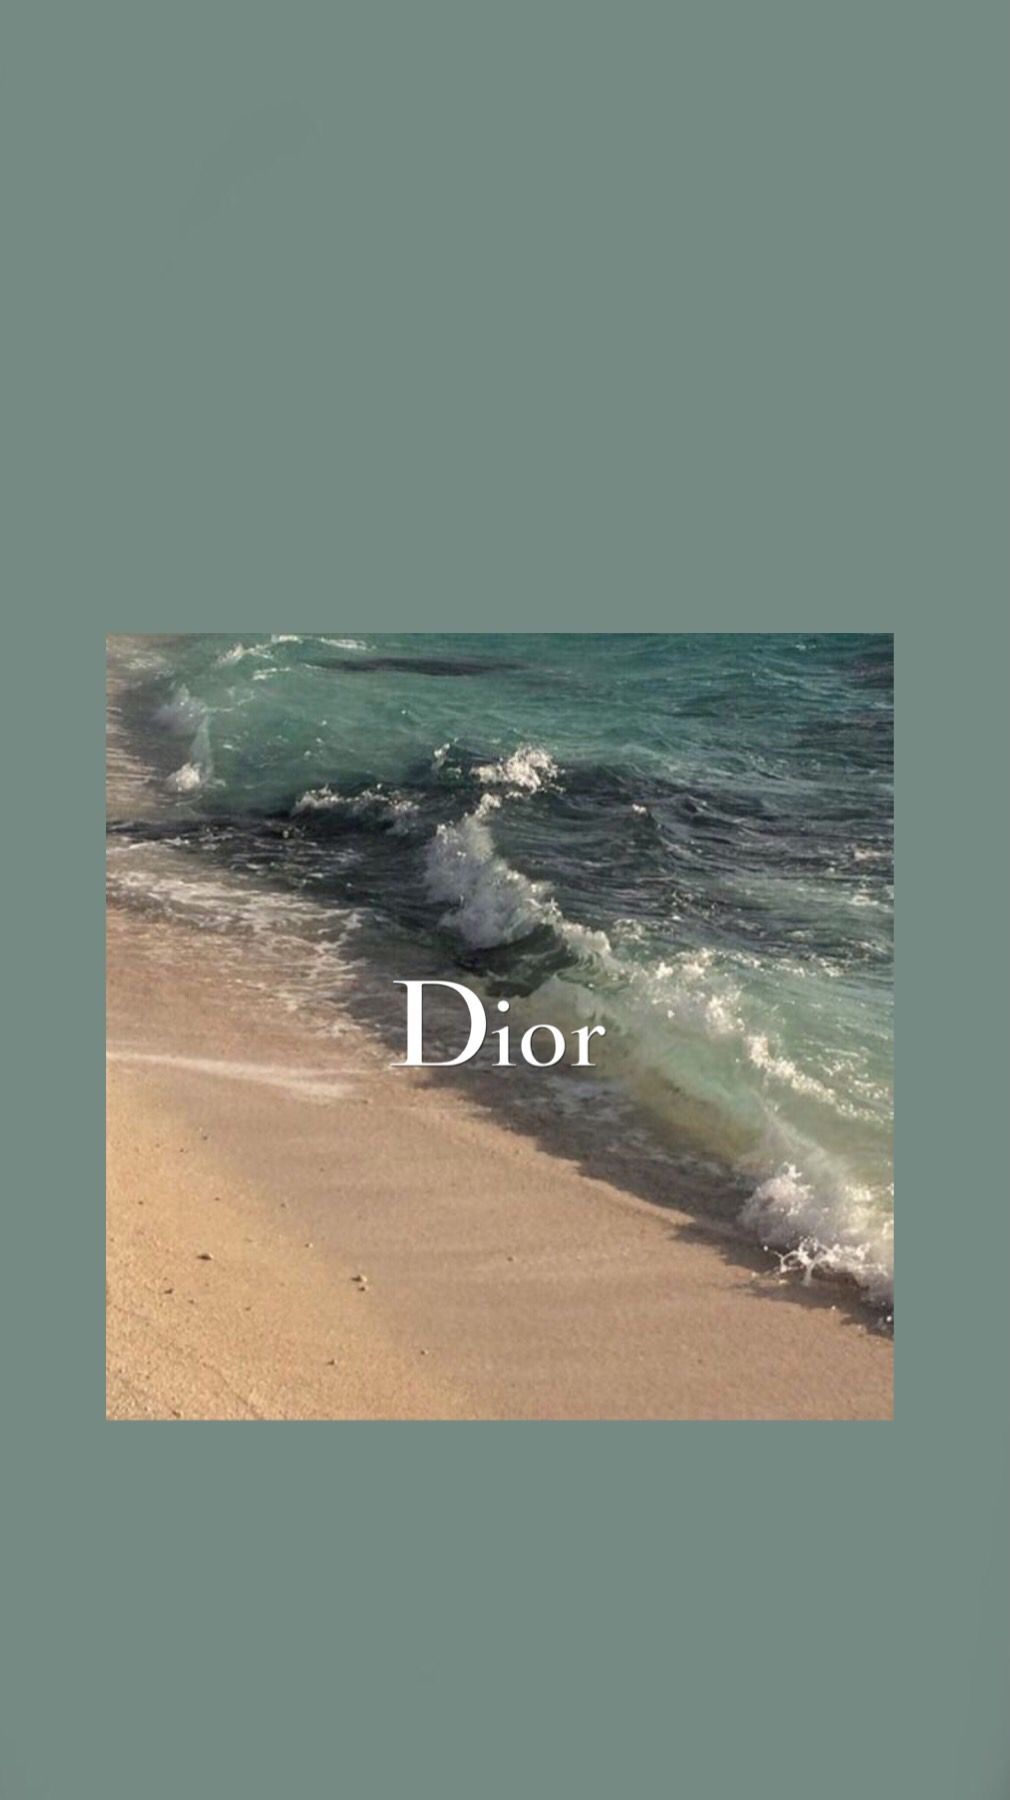 Beach Dior Wallpaper Lockscreen Fashion Aesthetic Pastel Wallpaper Aesthetic Wallpapers Aesthetic Iphone Wallpaper